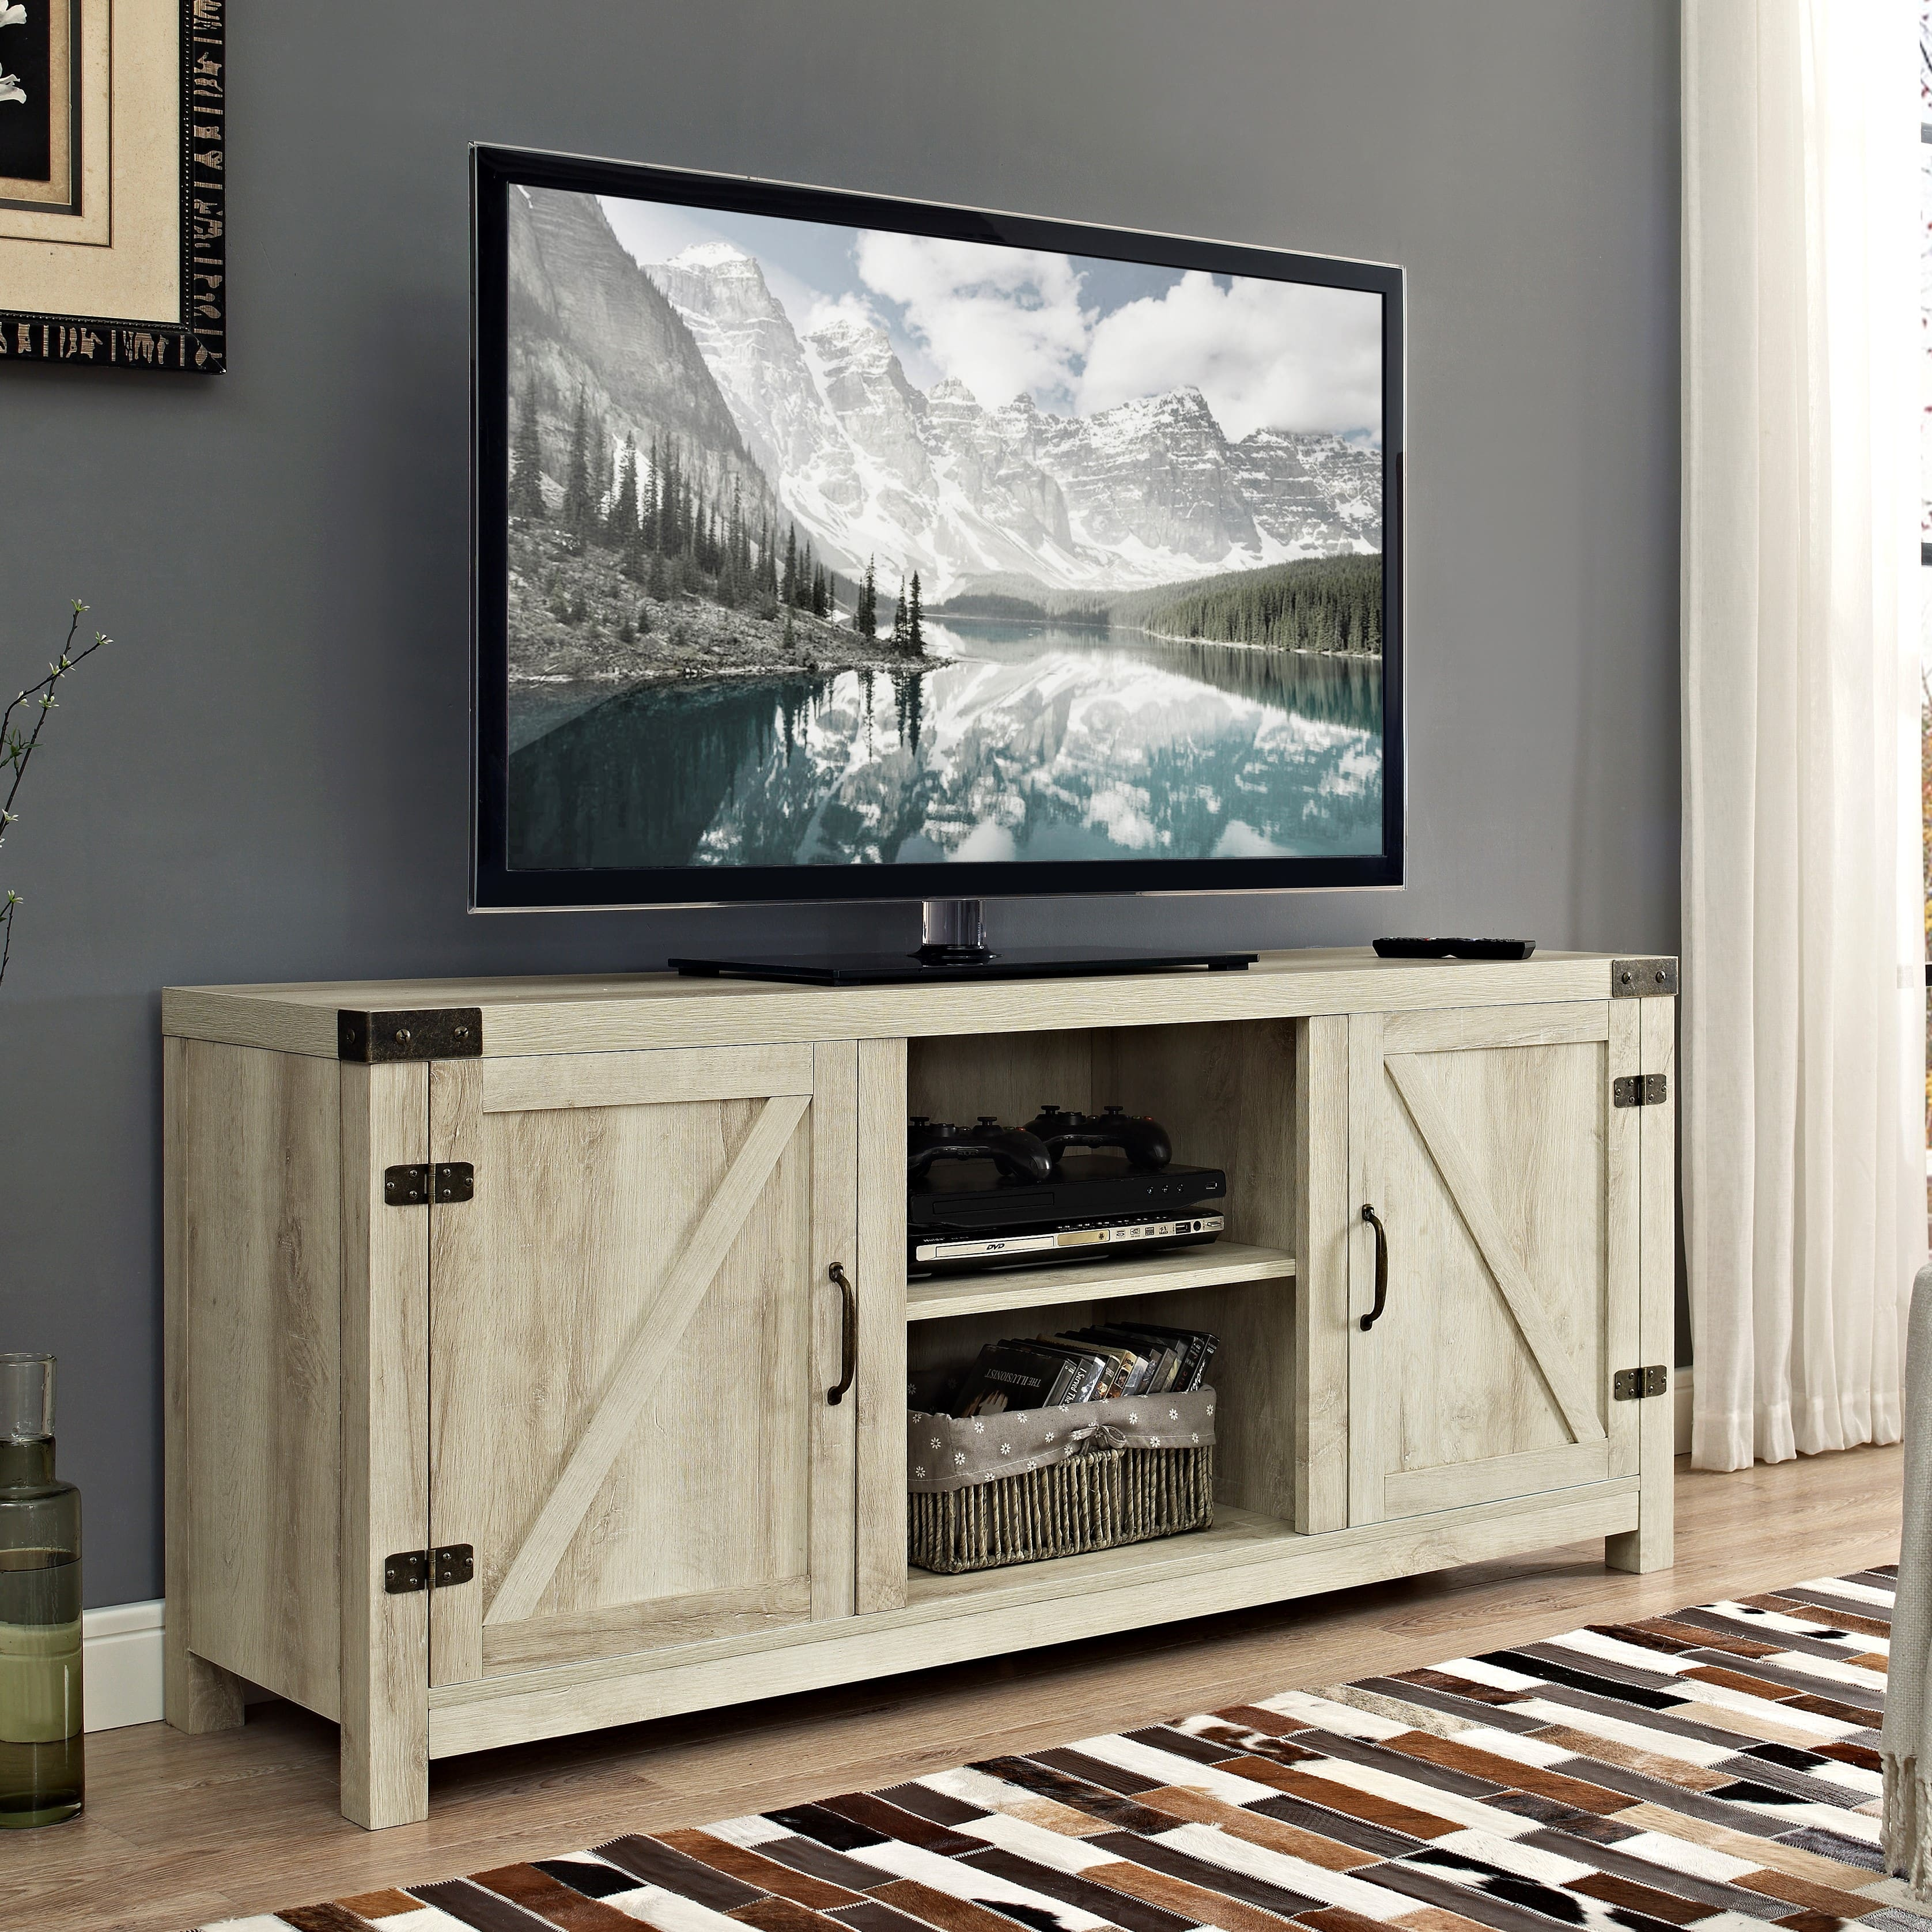 """Manor Park Modern Farmhouse Barn Door TV Stand for TV's up to 64"""" - White Oak $125"""